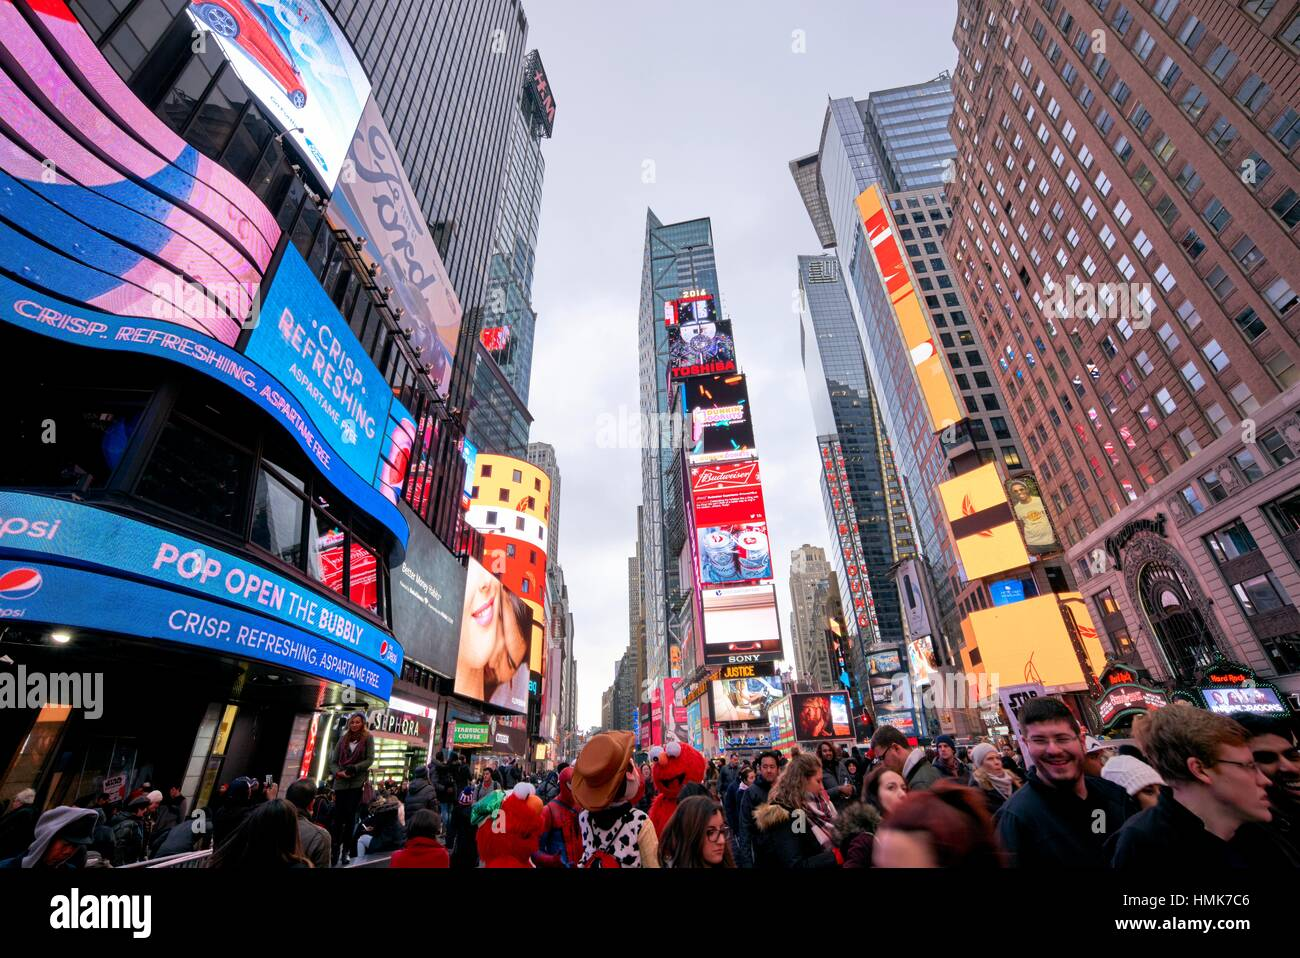 Vibrant shining life in Times Square. Manhattan, New York City, USA - Stock Image